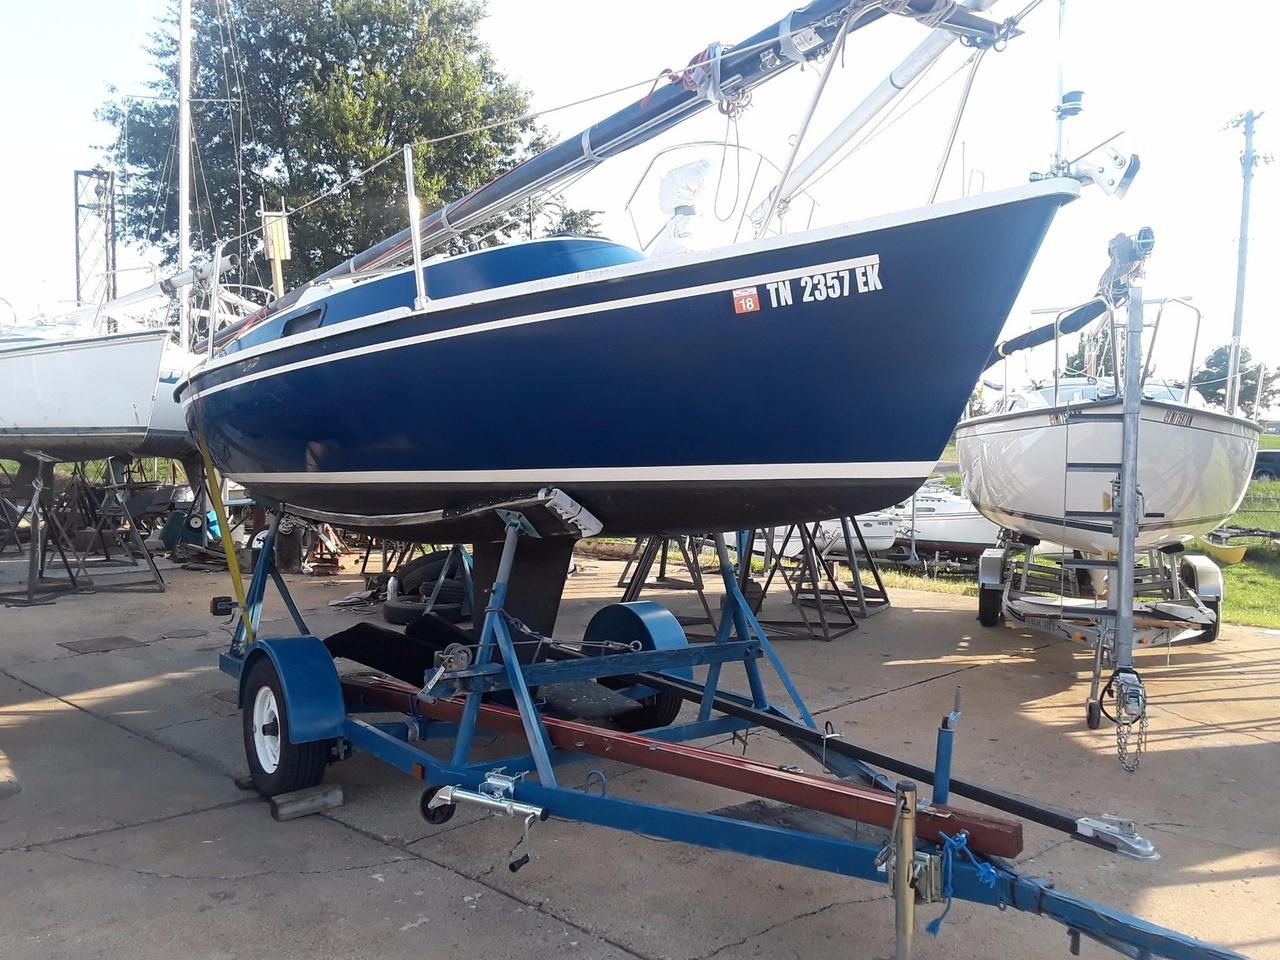 1983 Used Freedom 21 Daysailer Sailboat For Sale - $5,900 - TN, US